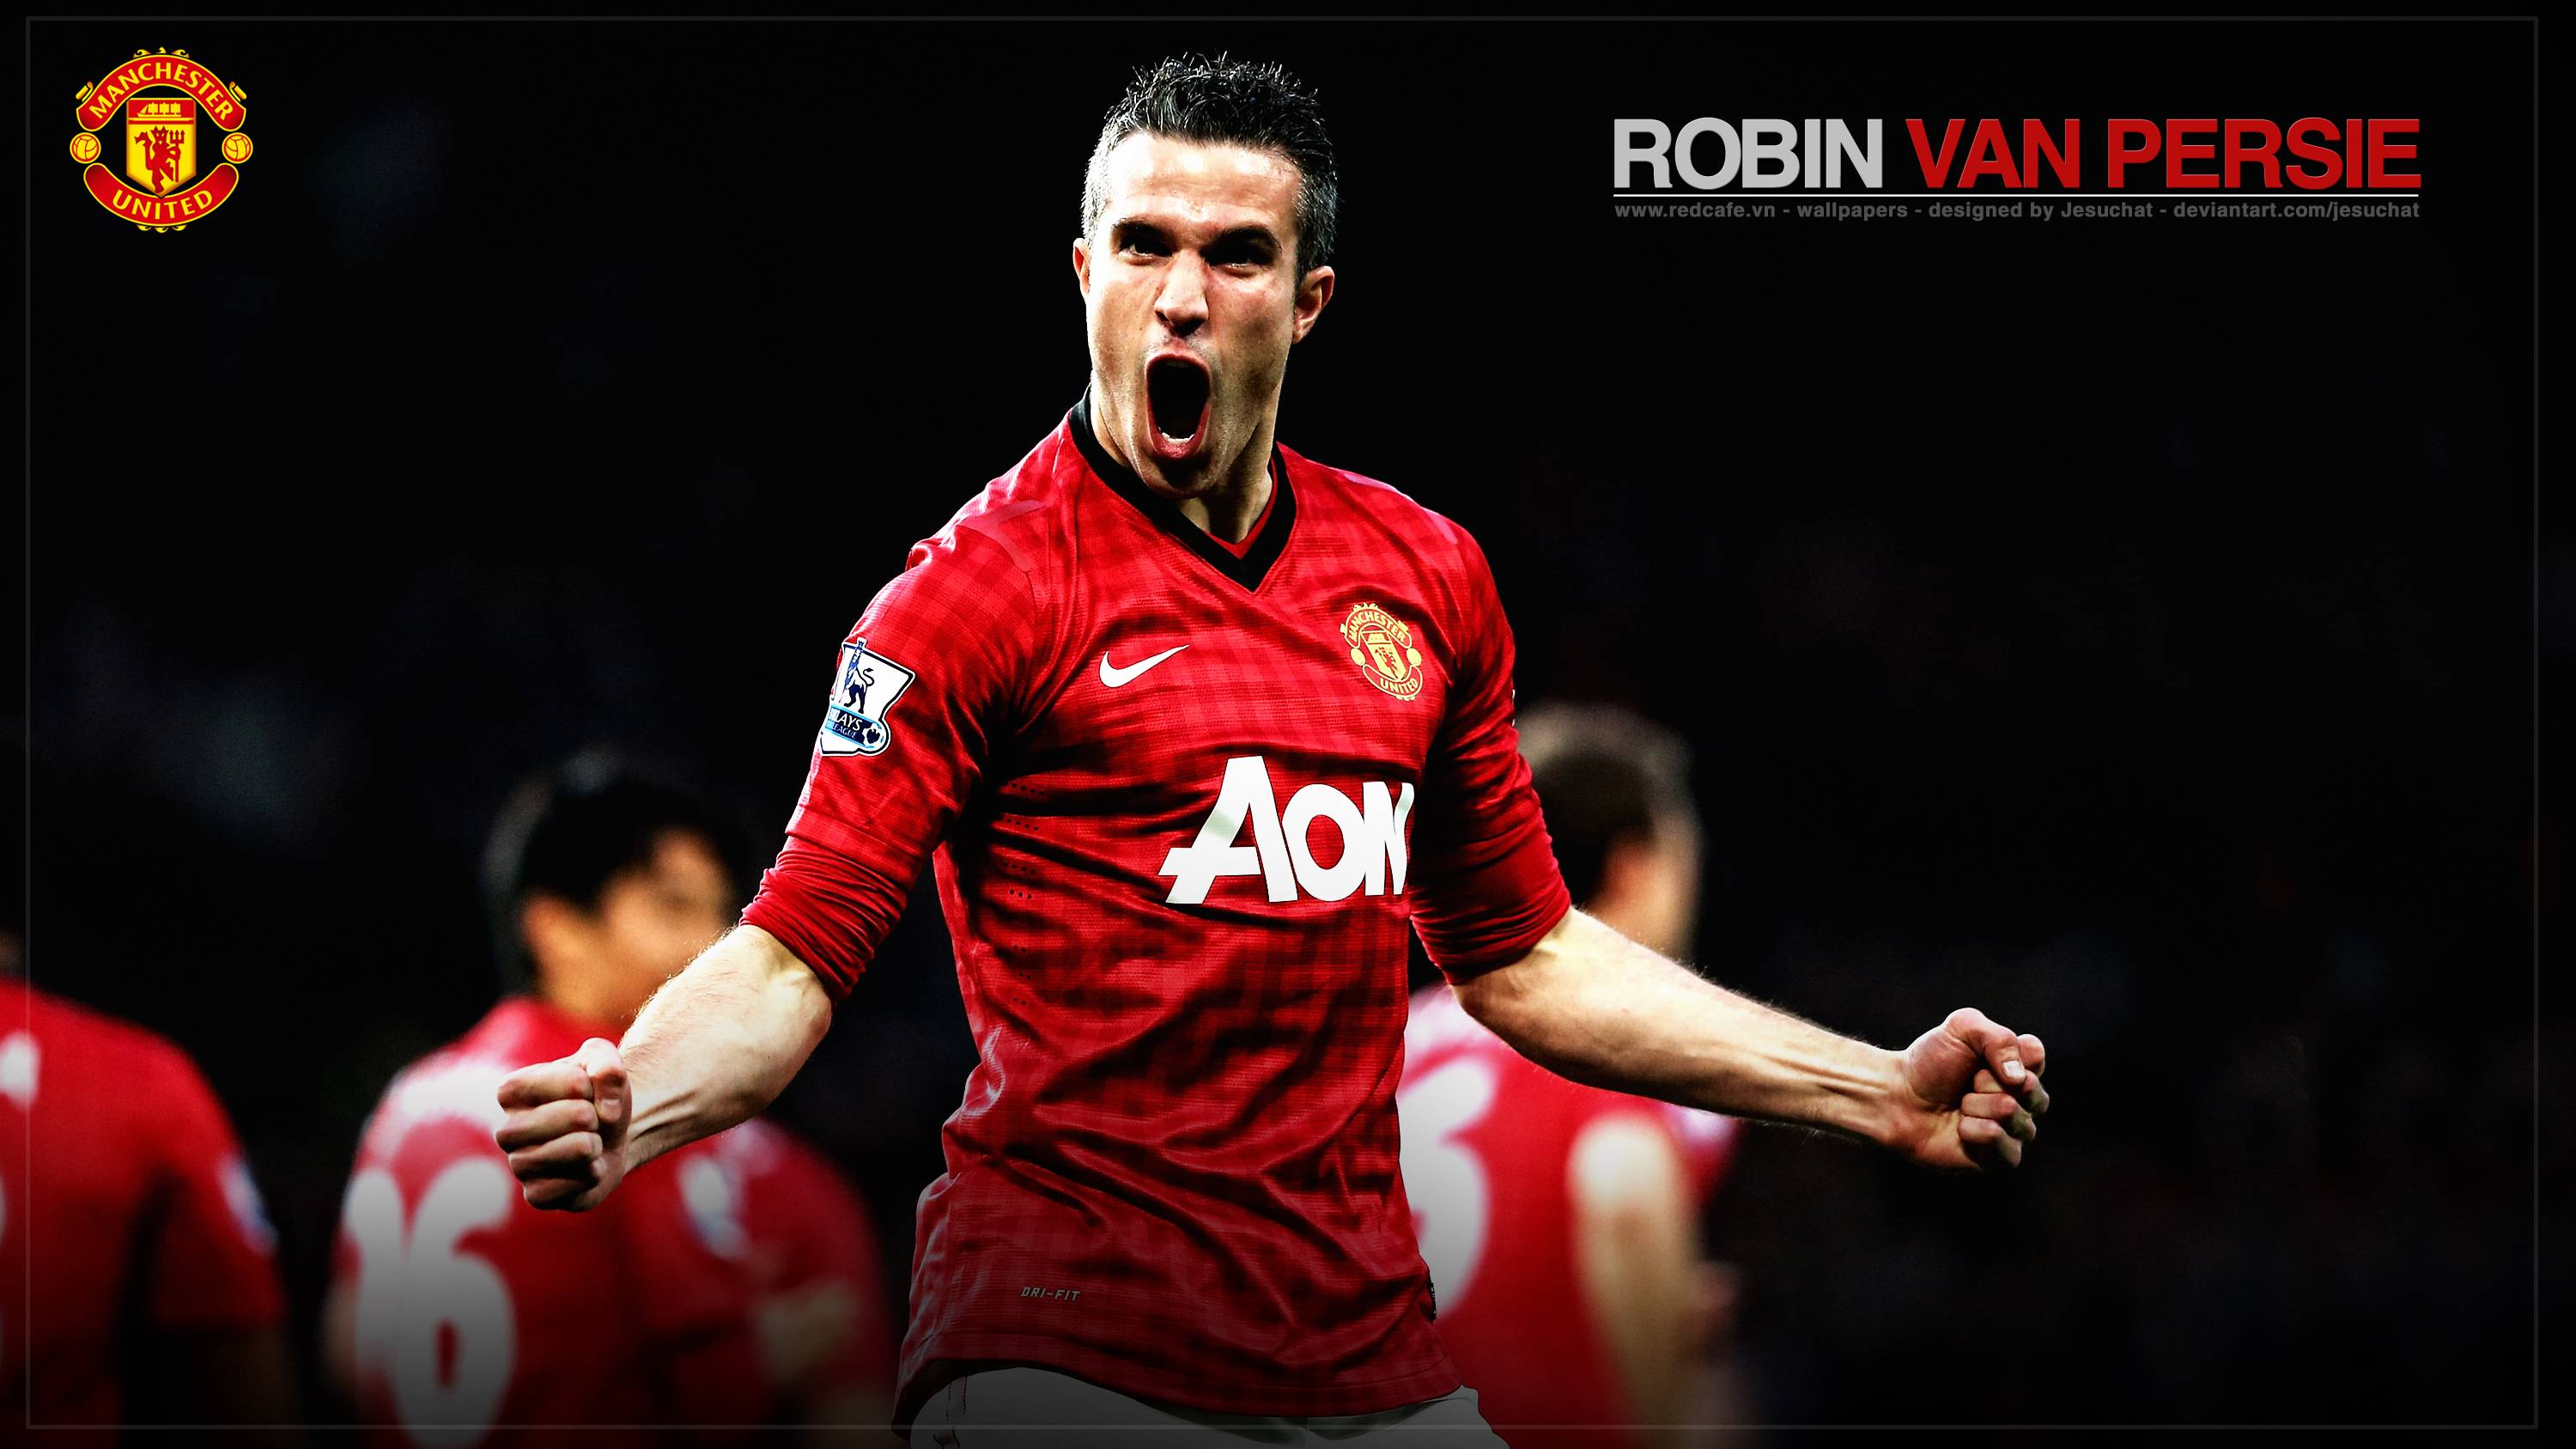 Robin van Persie Manchester united football high quality